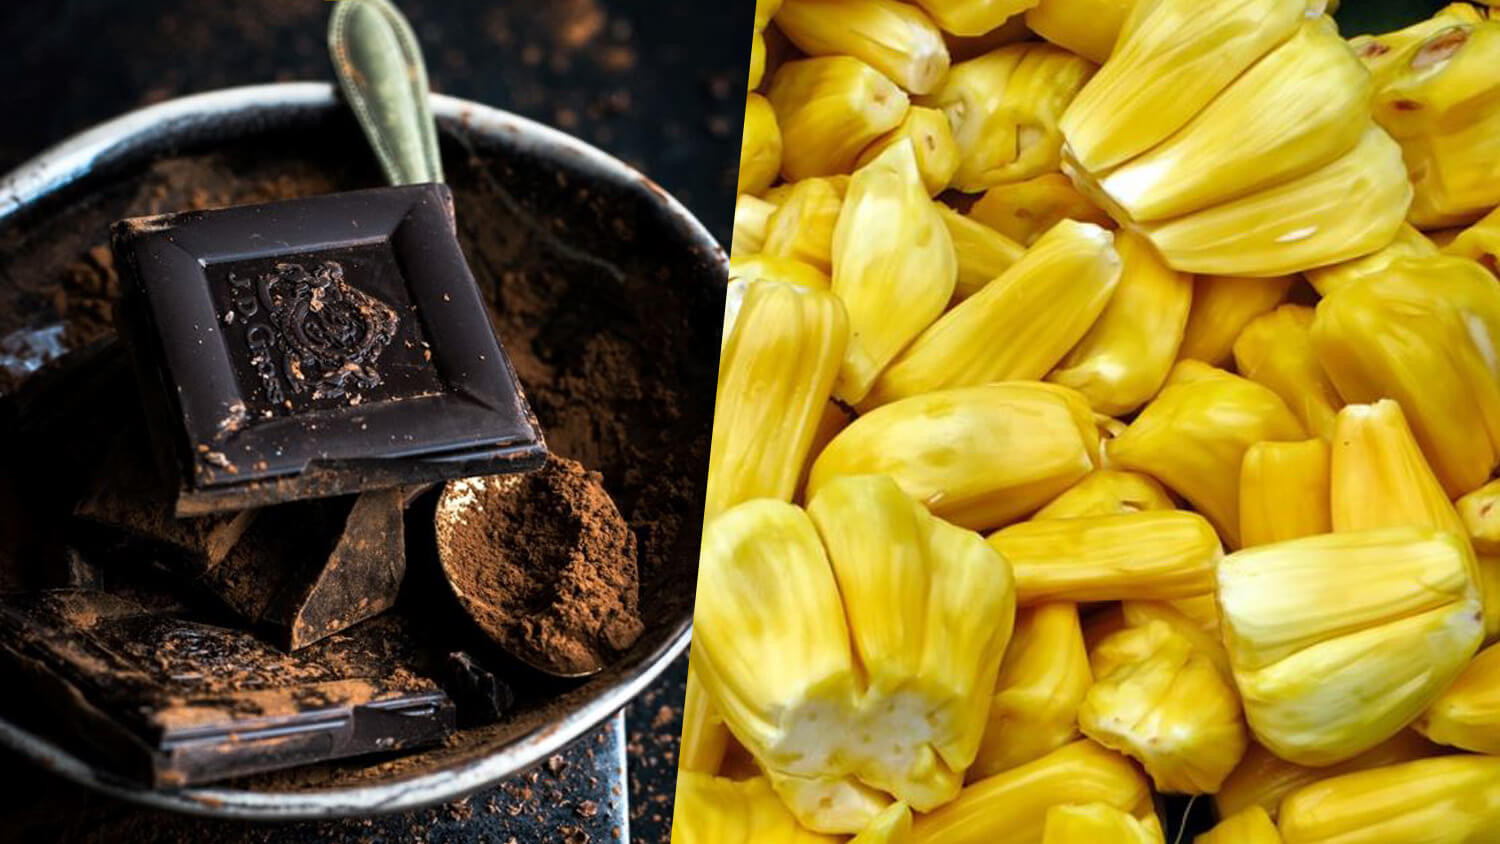 Chocolatey Aroma of Roasted Jackfruit Seeds Could Relieve Strain on Cocoa Industry, Says New Study